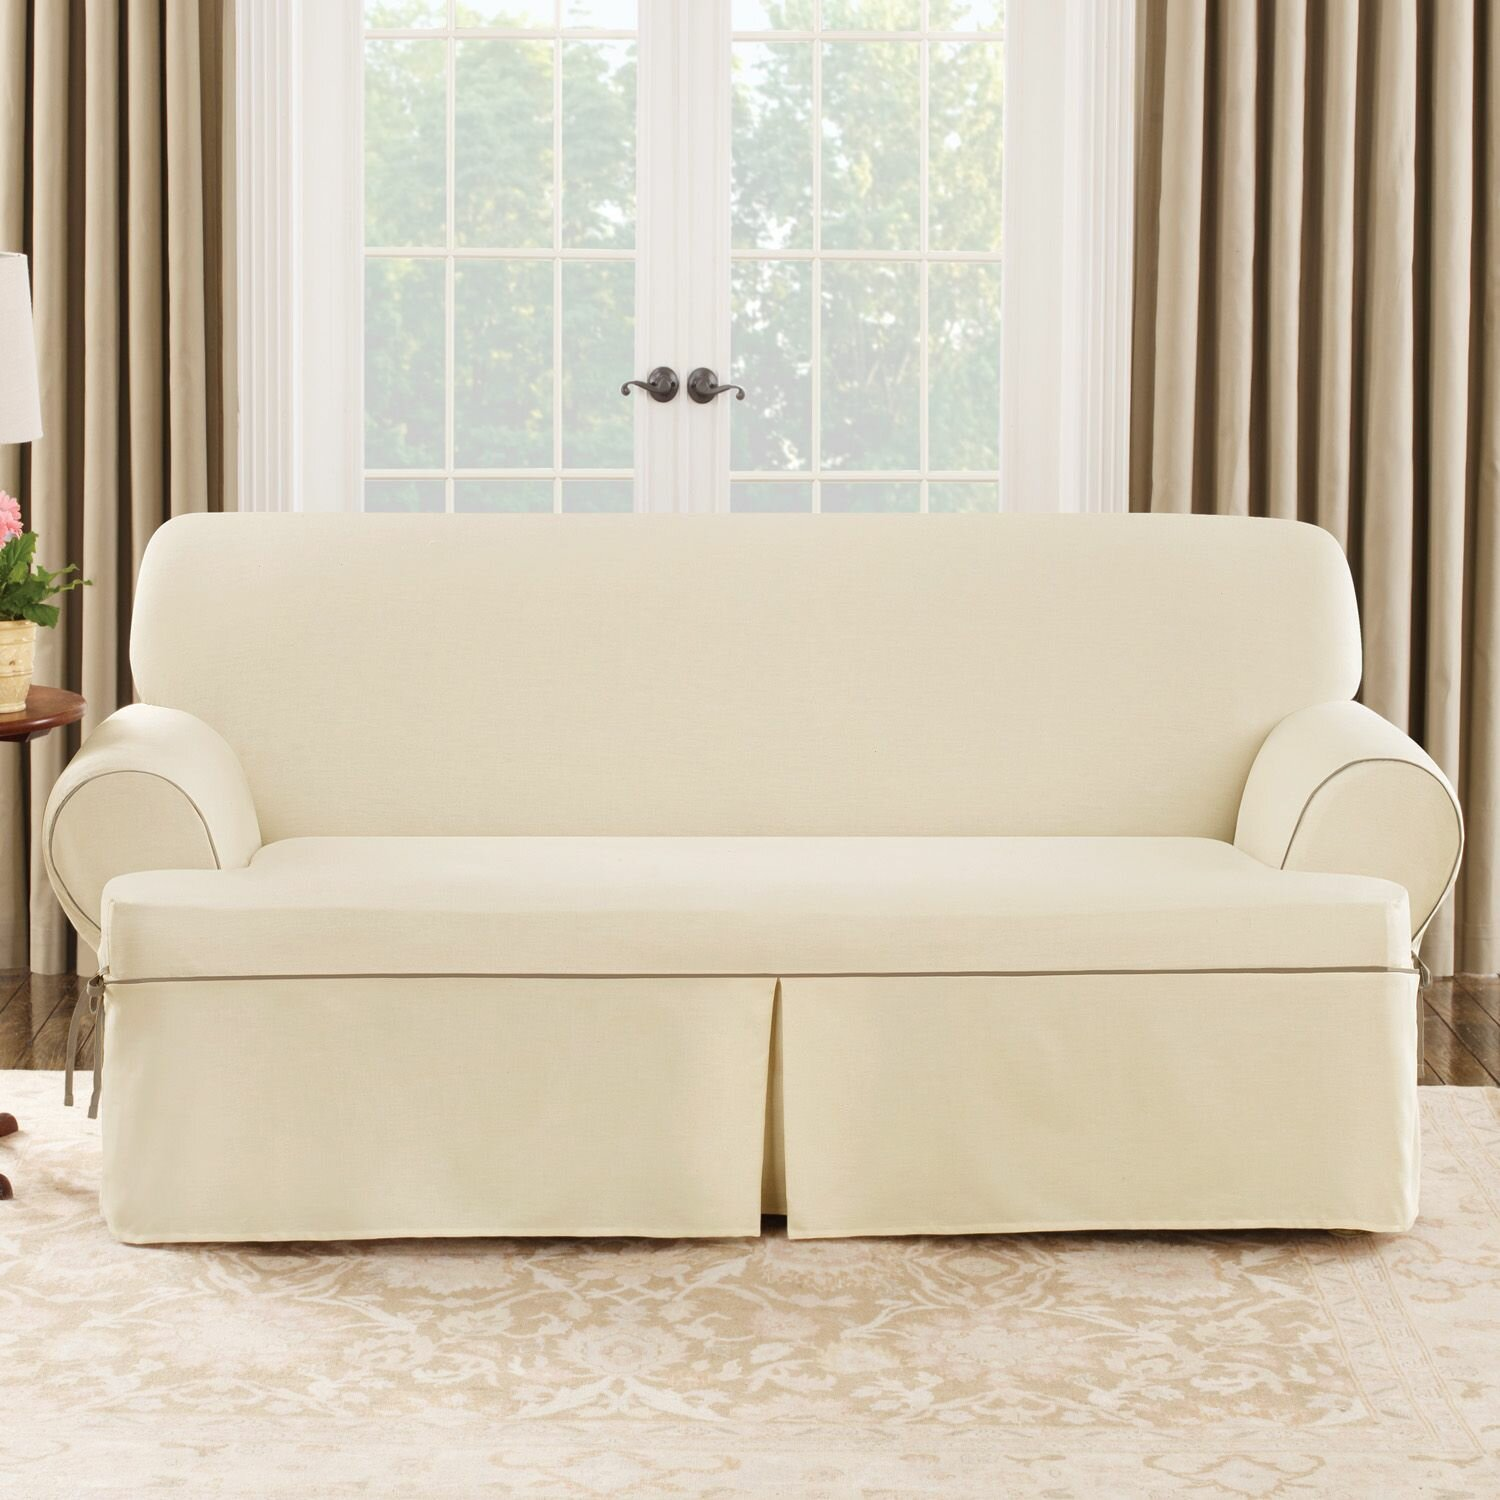 Slipcover Sofa Set: Sure Fit Cotton Duck Sofa T-Cushion Slipcover & Reviews